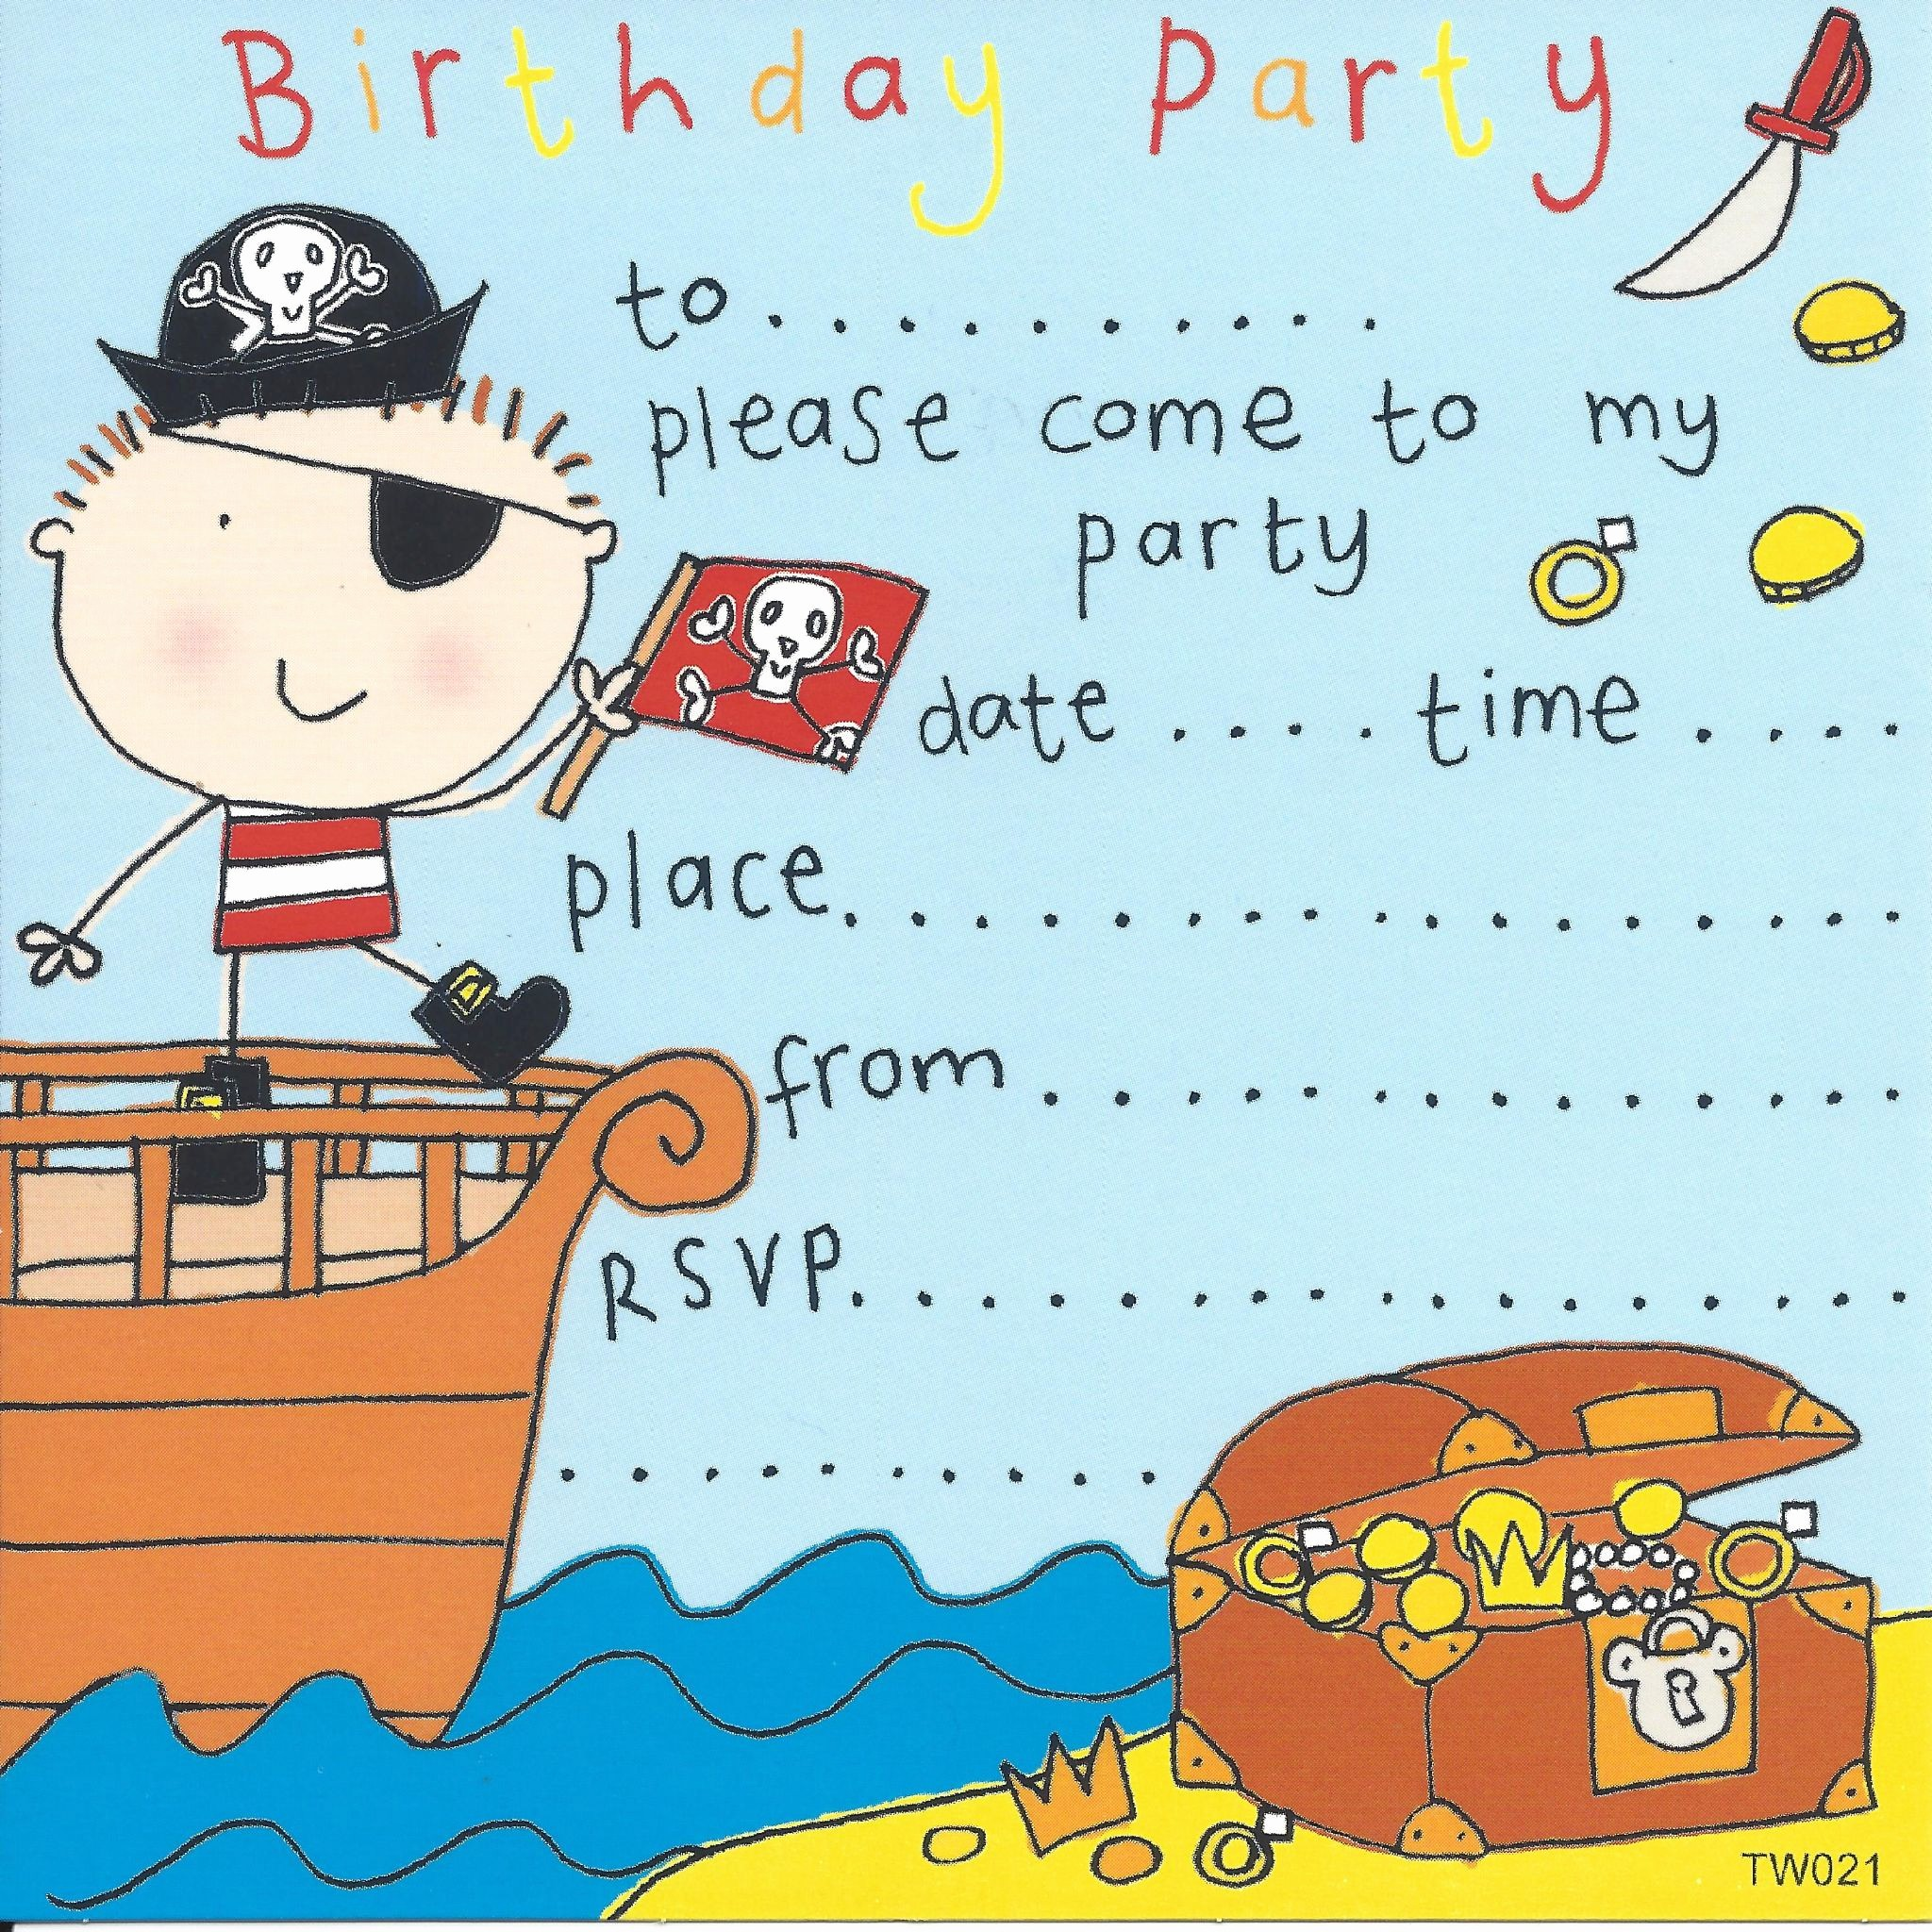 Kids Birthday Party Invite Templates Best Of Party Invitations Birthday Party Invitations Kids Party